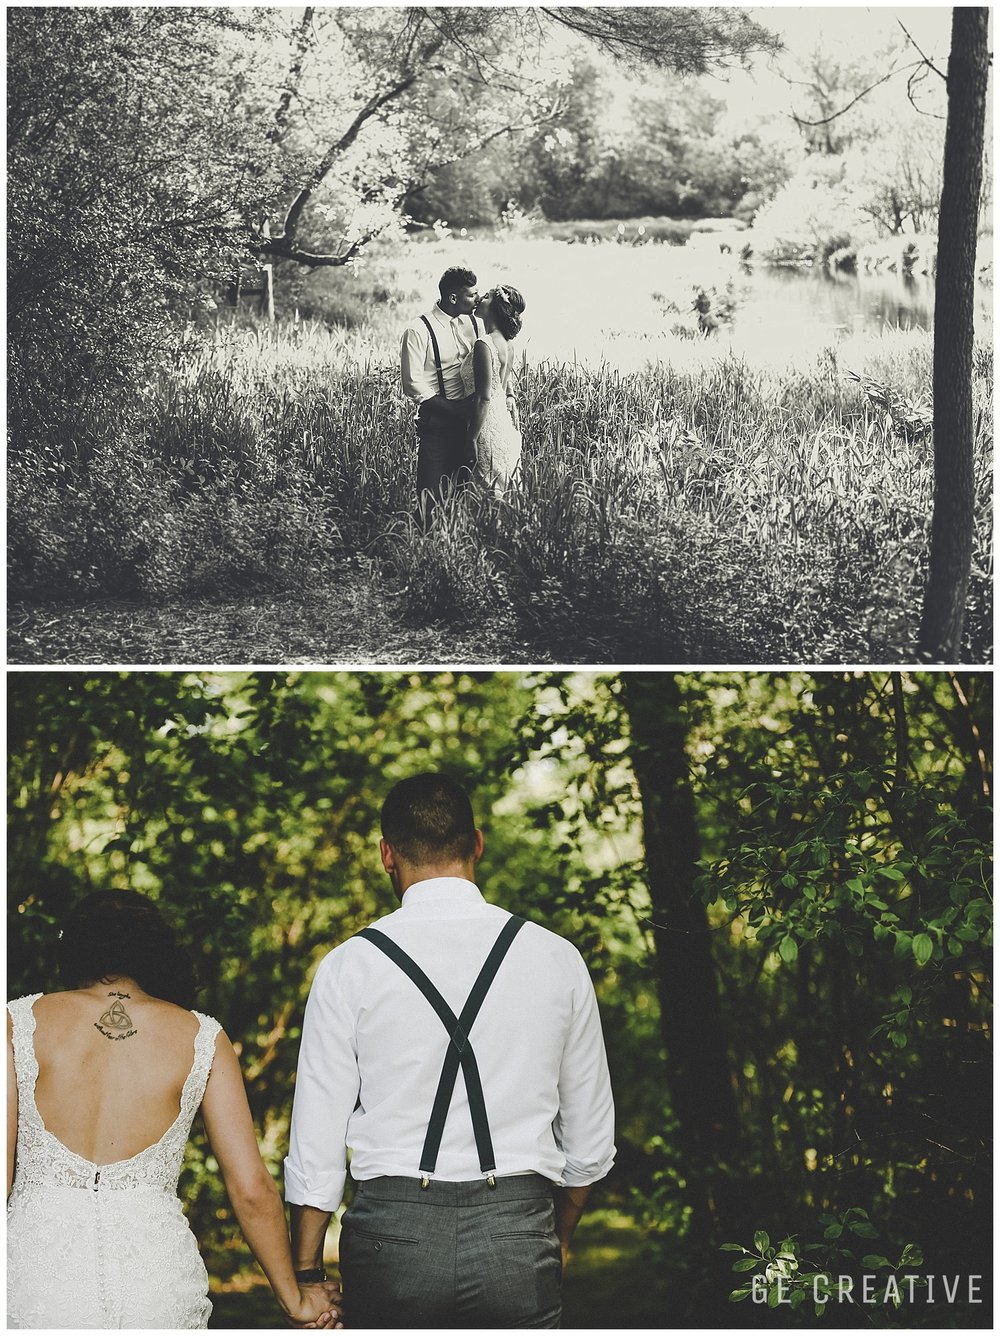 Milwaukee Wedding Idea-nature wedding photo